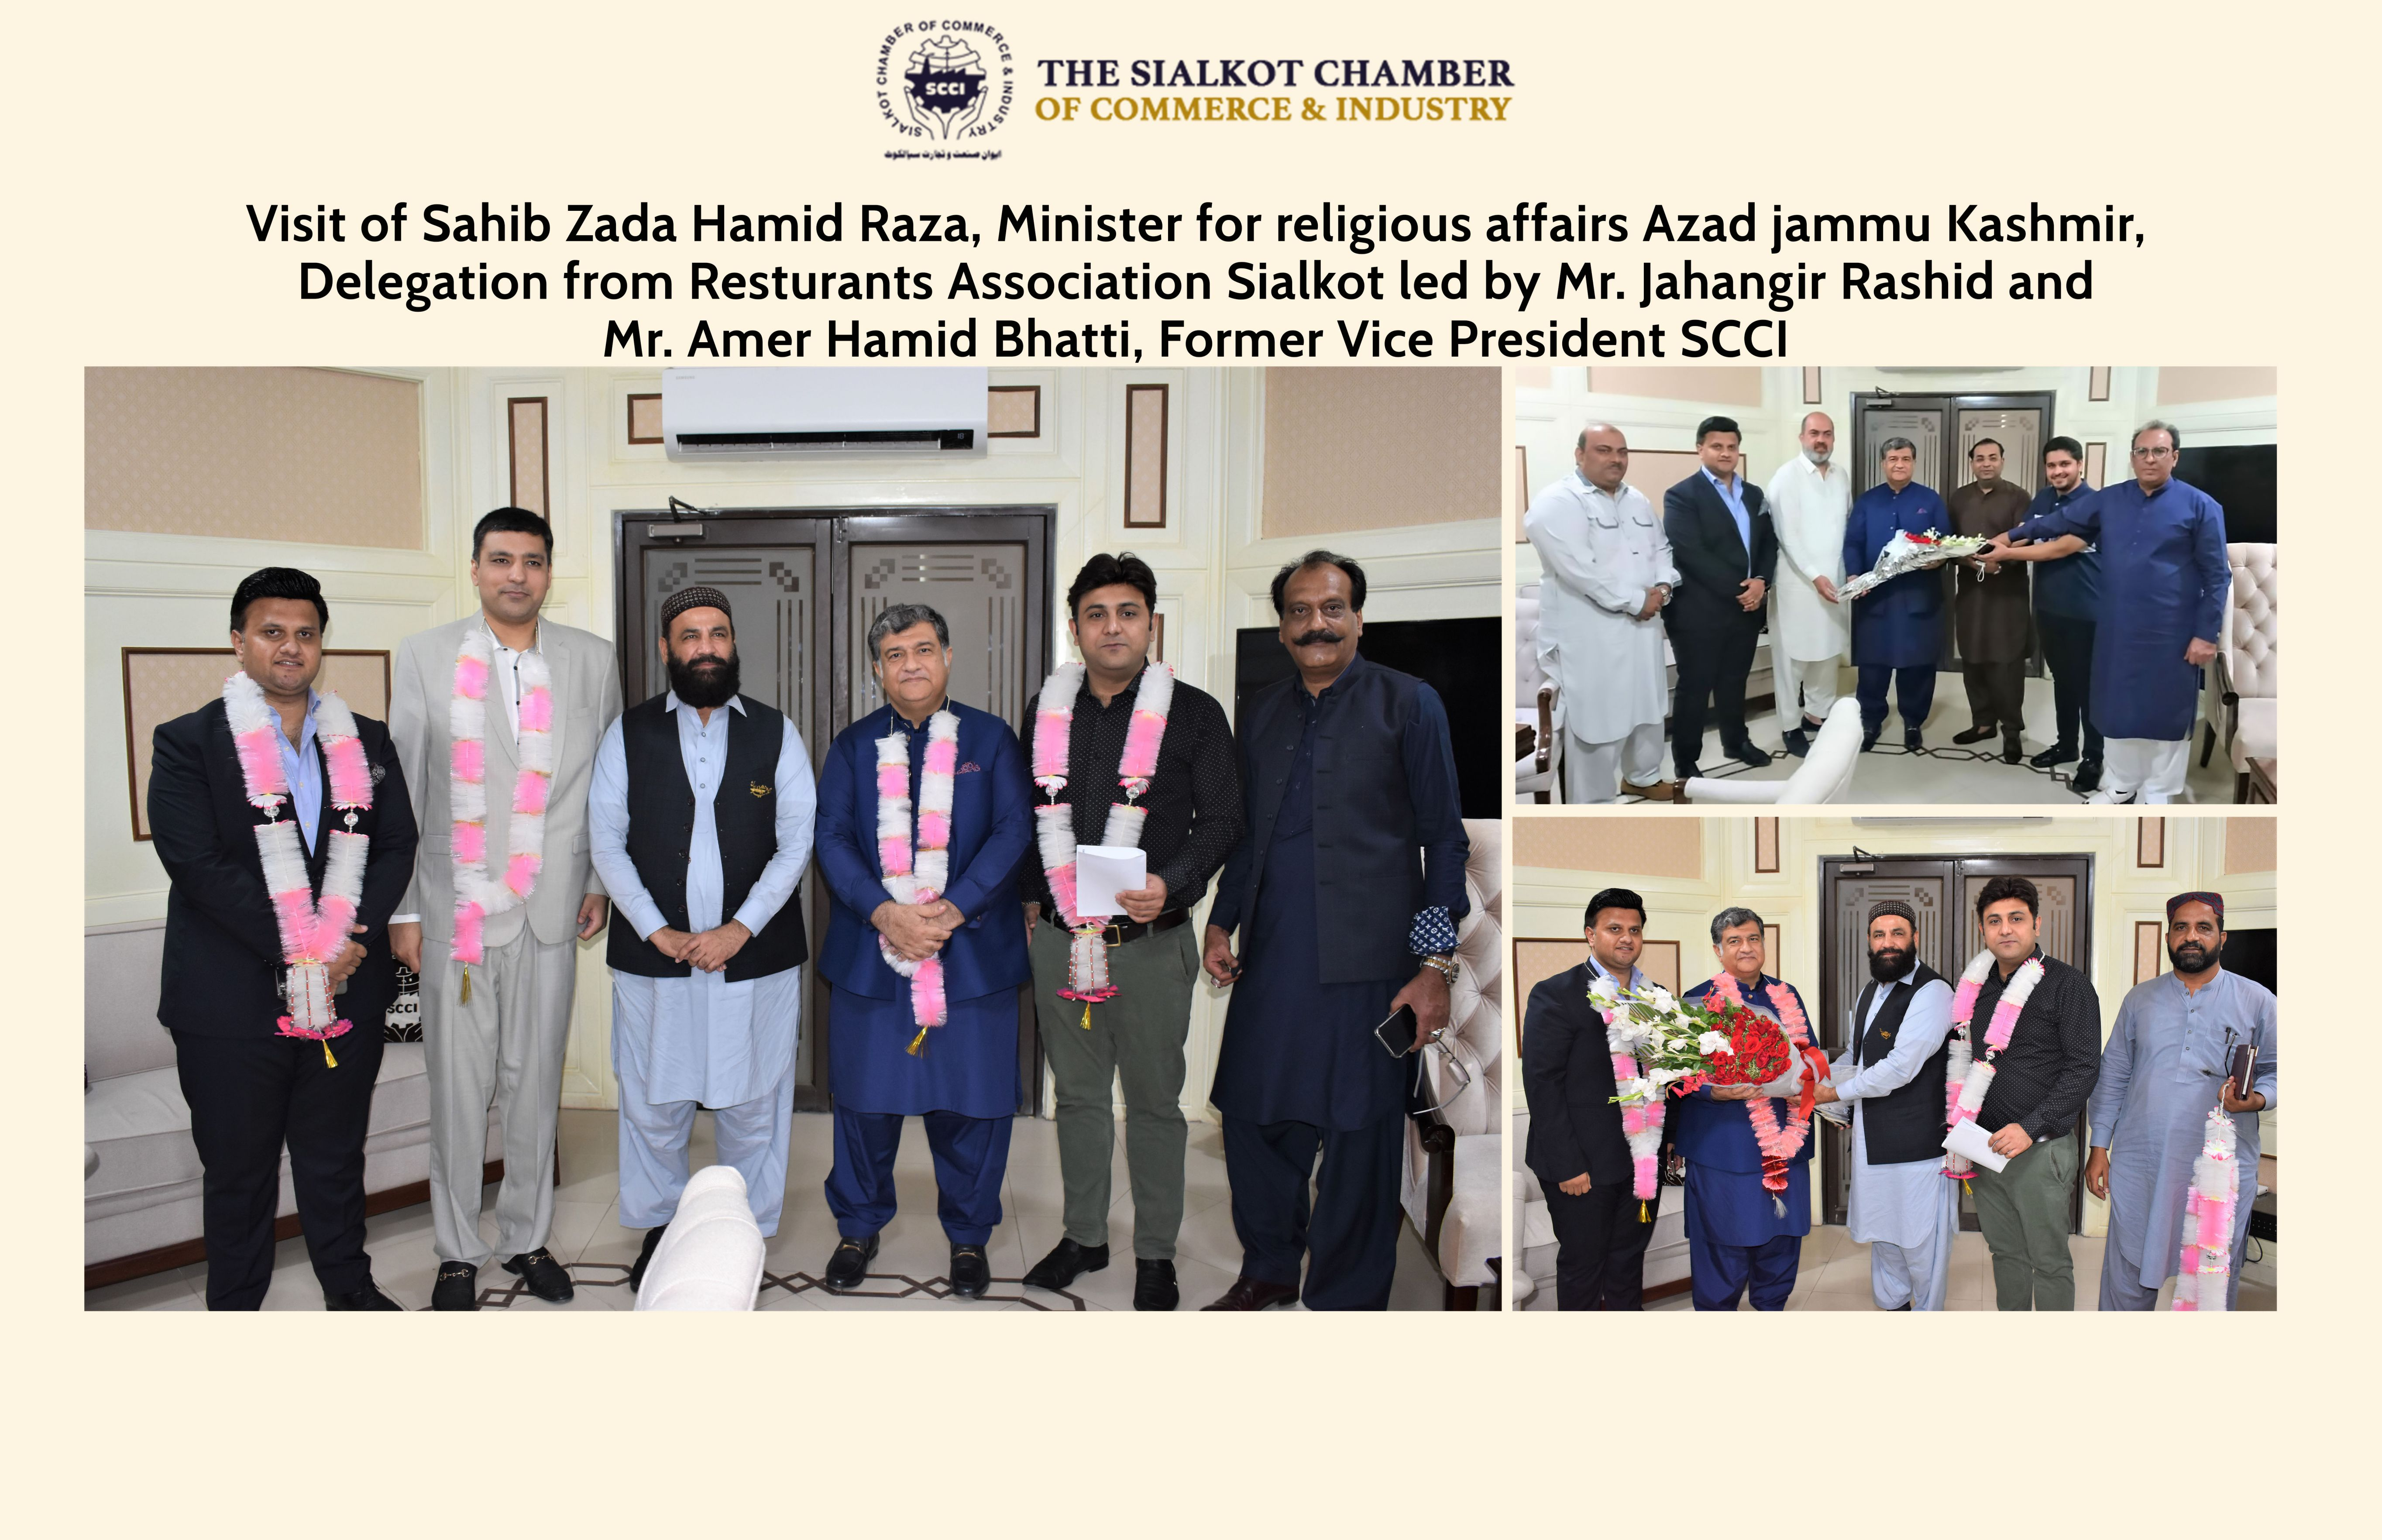 On October 18, 2021, Sahibzada Hamid Raza, Minister for religious affairs Azad Jammu Kashmir, A delegation of Restaurants Association Sialkot led by Mr. Jahangir Rashid, Executive Committee Member, SCCI and  Mr. Amer Hamid Bhatti, Former Vice President, SCCI visited Sialkot Chamber of Commerce & Industry and extended heartiest felicitations to President, Senior Vice President and Vice President, The Sialkot Chamber of Commerce & Industry for assuming the charge as Office Bearers of SCCI.